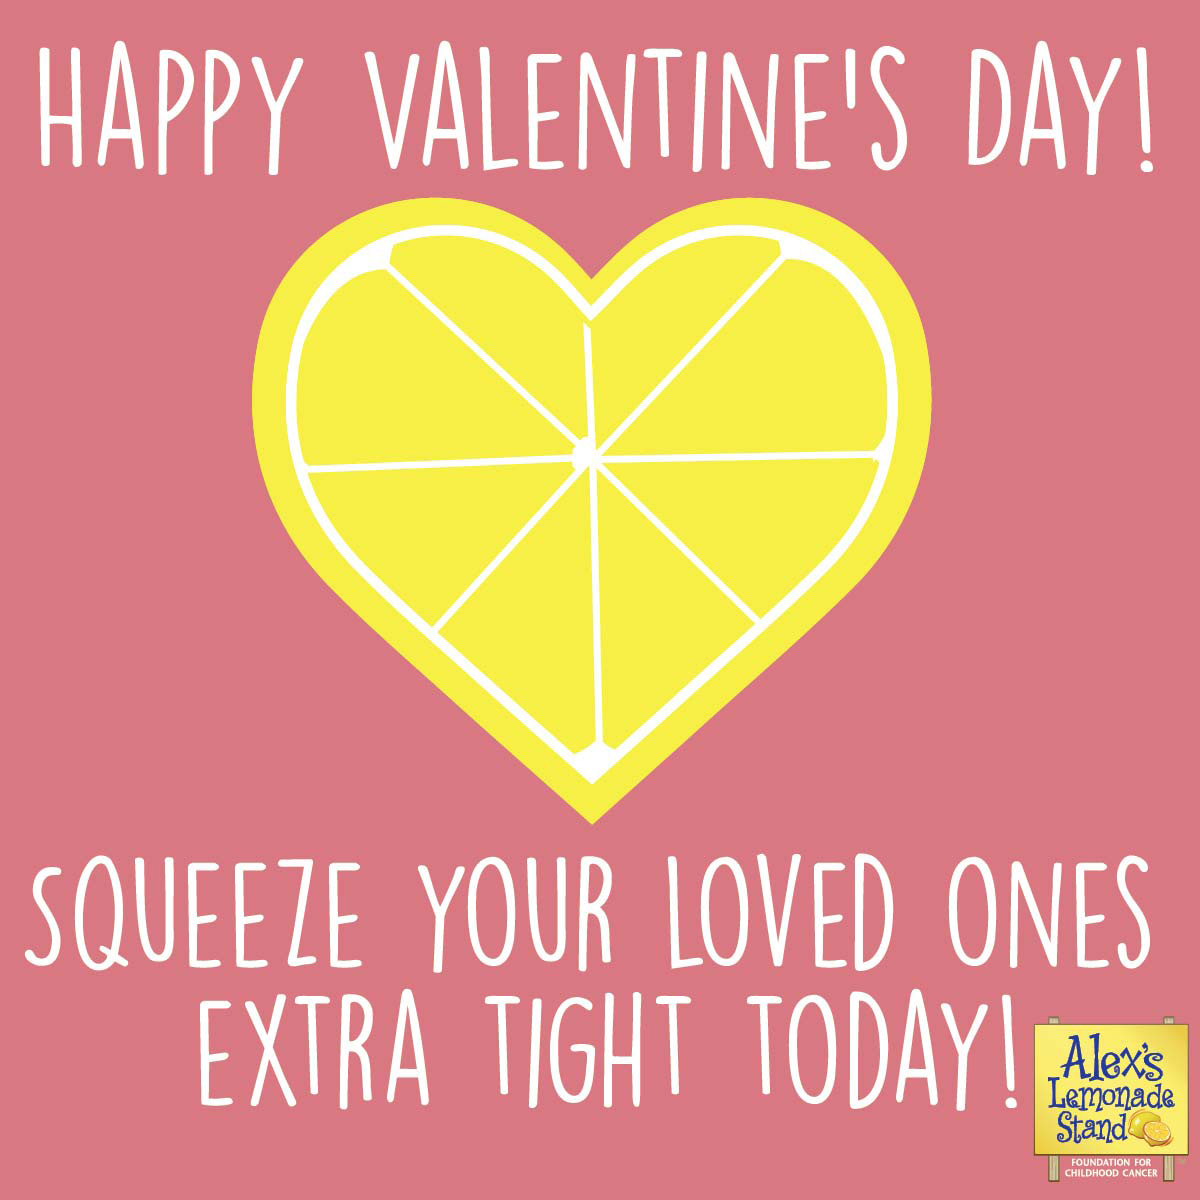 Happy Valentine's Day! Squeeze your loved ones extra tight today!